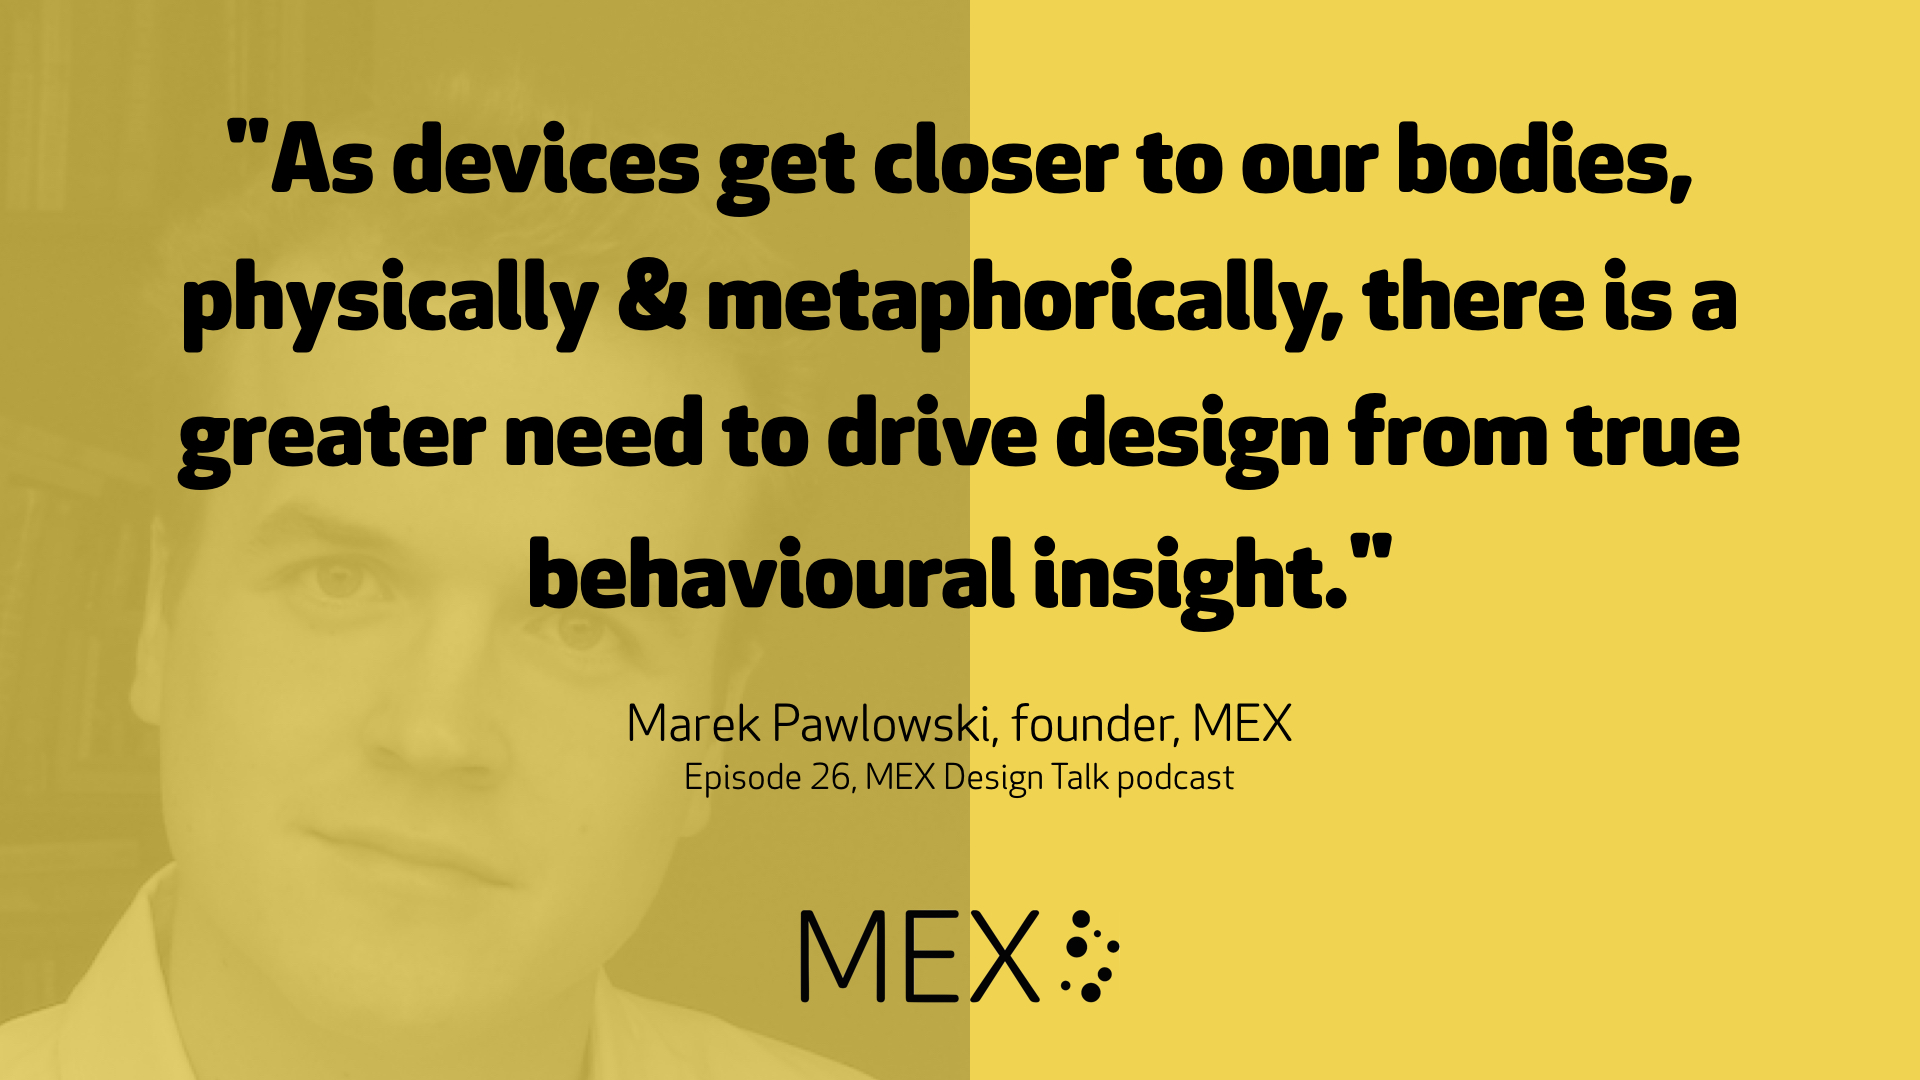 """As devices get closer to our bodies, physically & metaphorically, there is a greater need to drive design from true behavioural insight."" Marek Pawlowski, founder, MEX Episode 26, MEX Design Talk podcast"